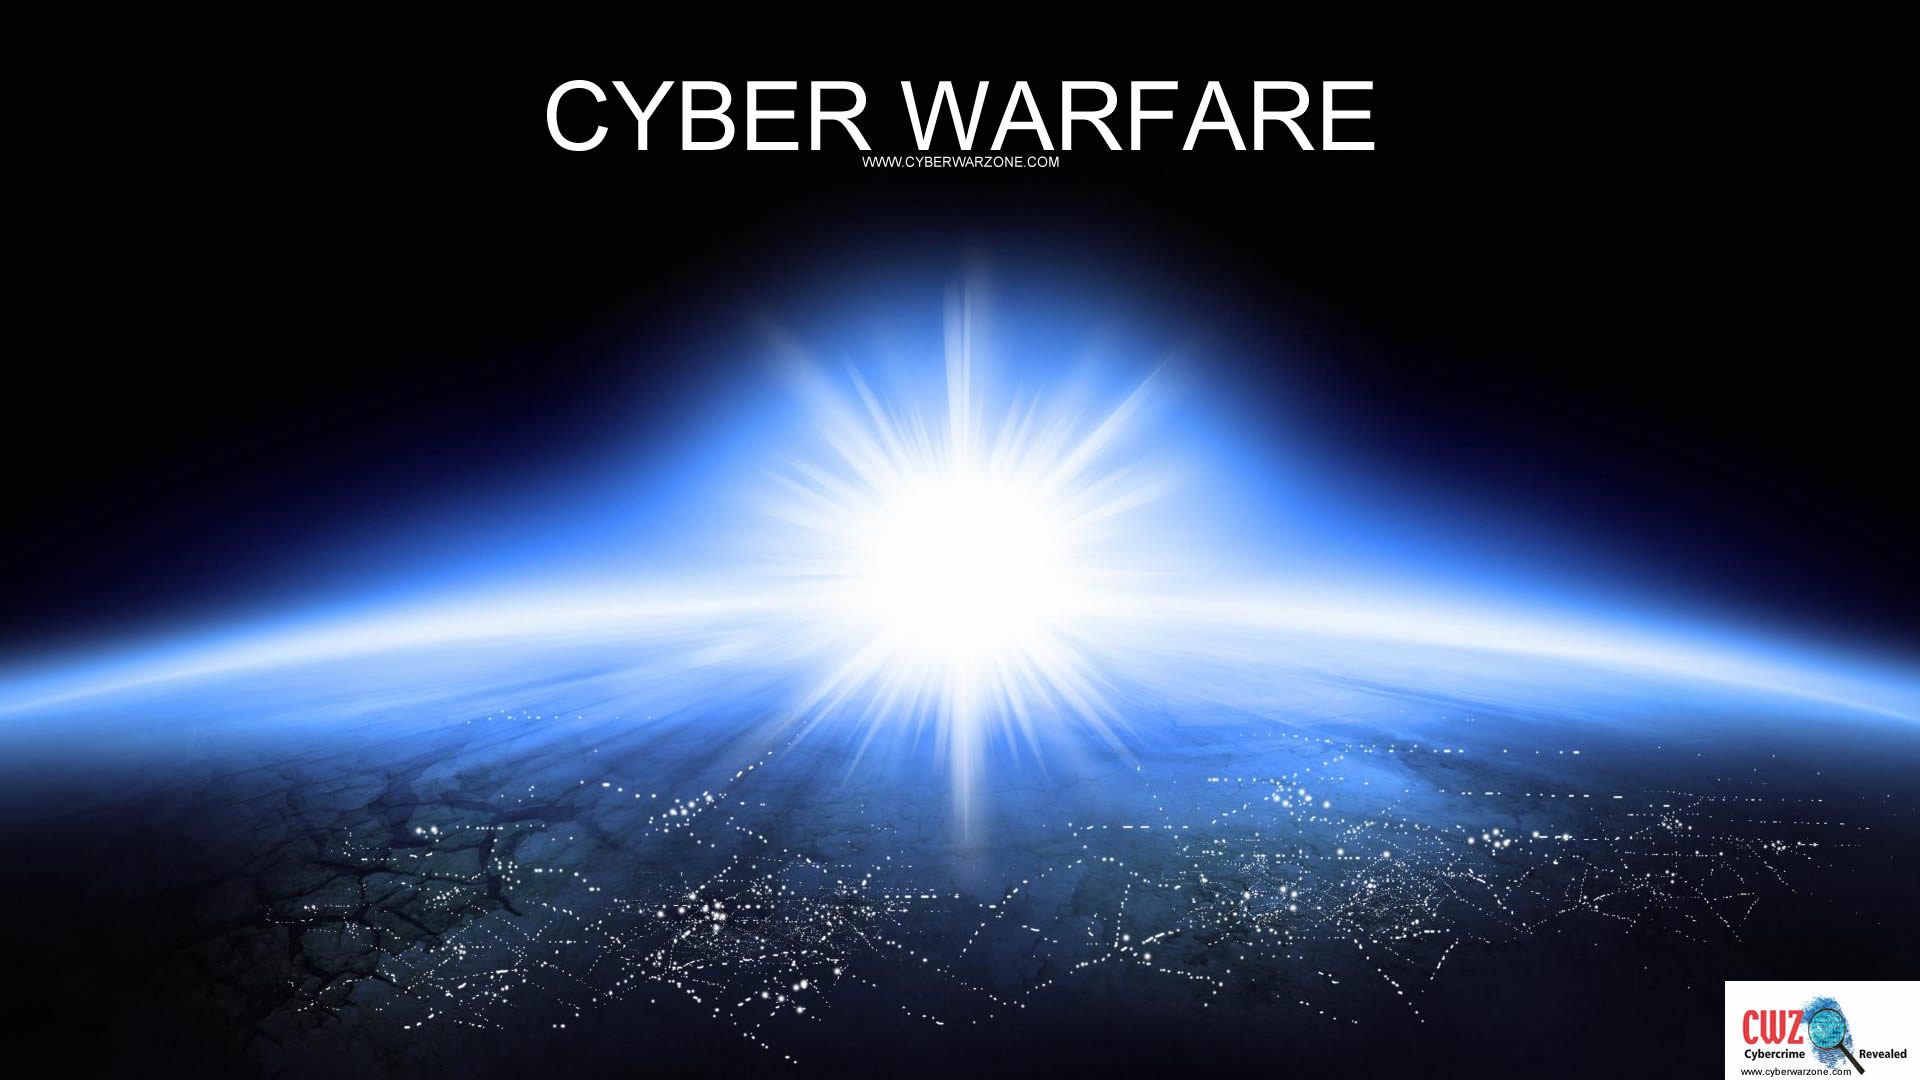 indian cyber warfare capability Cyberwarfare involves the battlespace use and targeting of computers and networks in warfare  most reports about china's cyber warfare capabilities have yet to be confirmed by the chinese the department of information technology created the indian computer emergency response team.